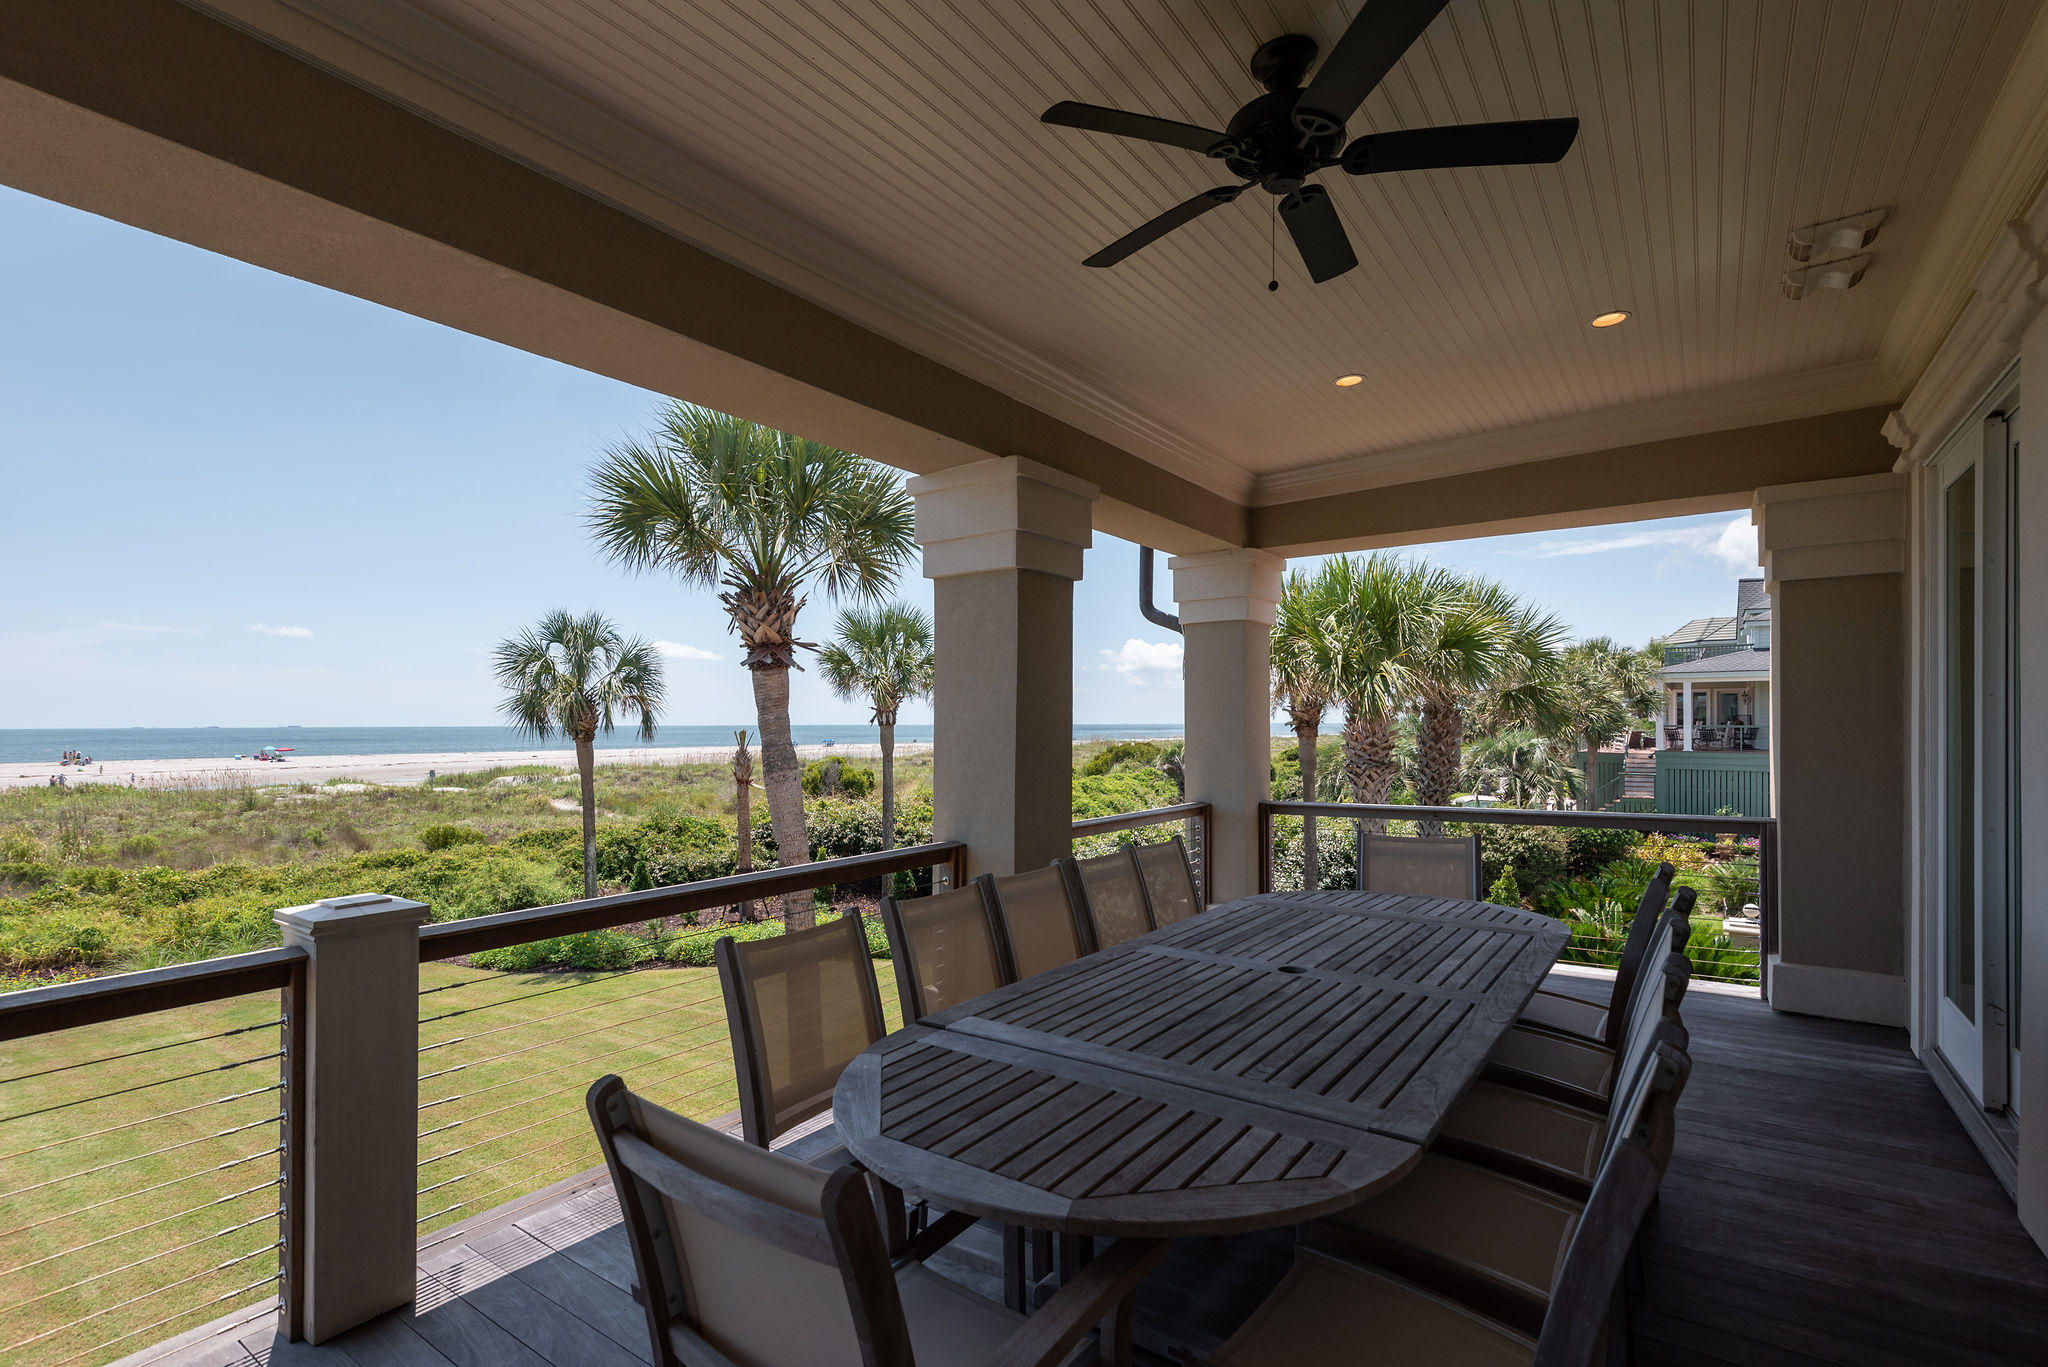 Isle of Palms Homes For Sale - 2 50th, Isle of Palms, SC - 56